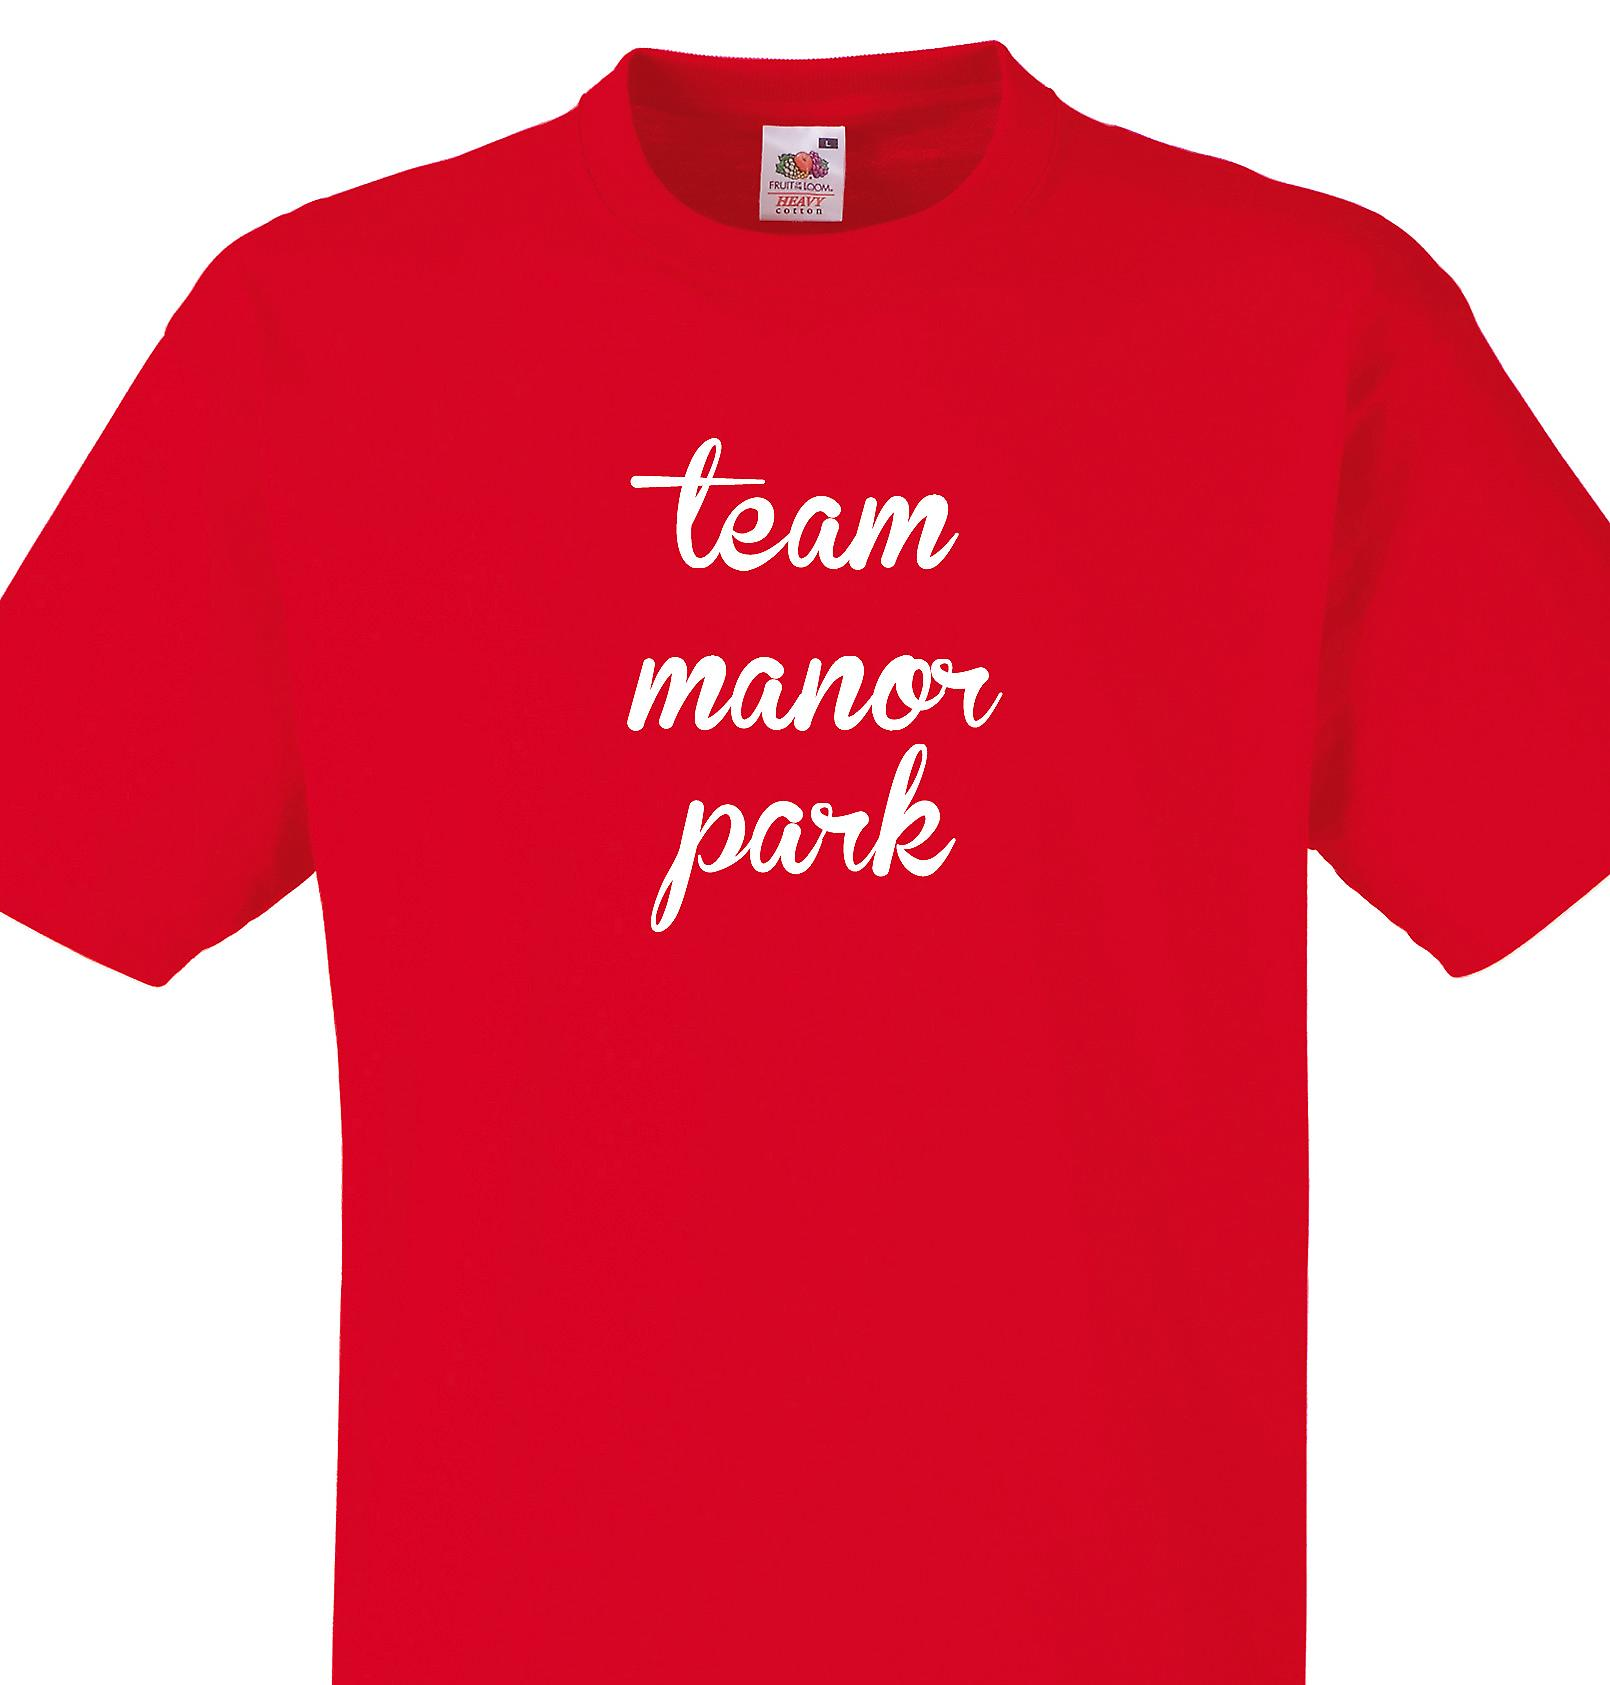 Team Manor park Red T shirt